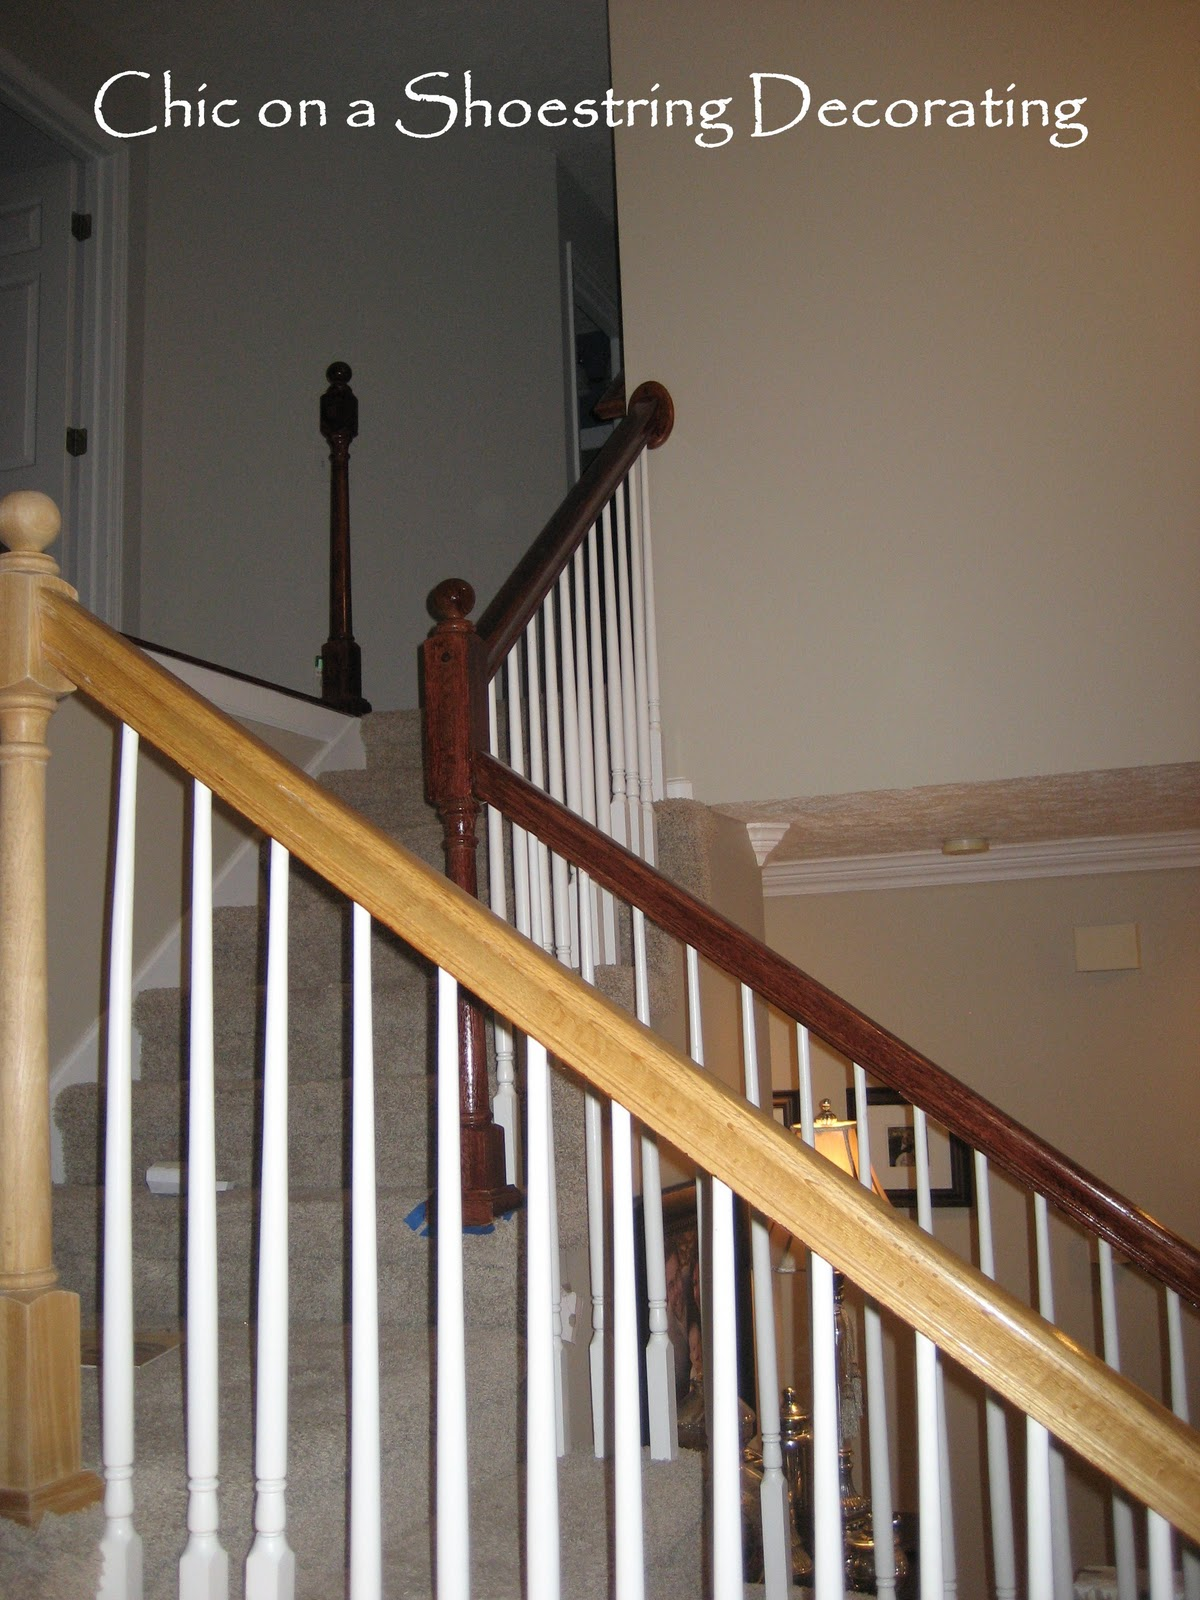 Chic on a Shoestring Decorating: How to Stain Stair